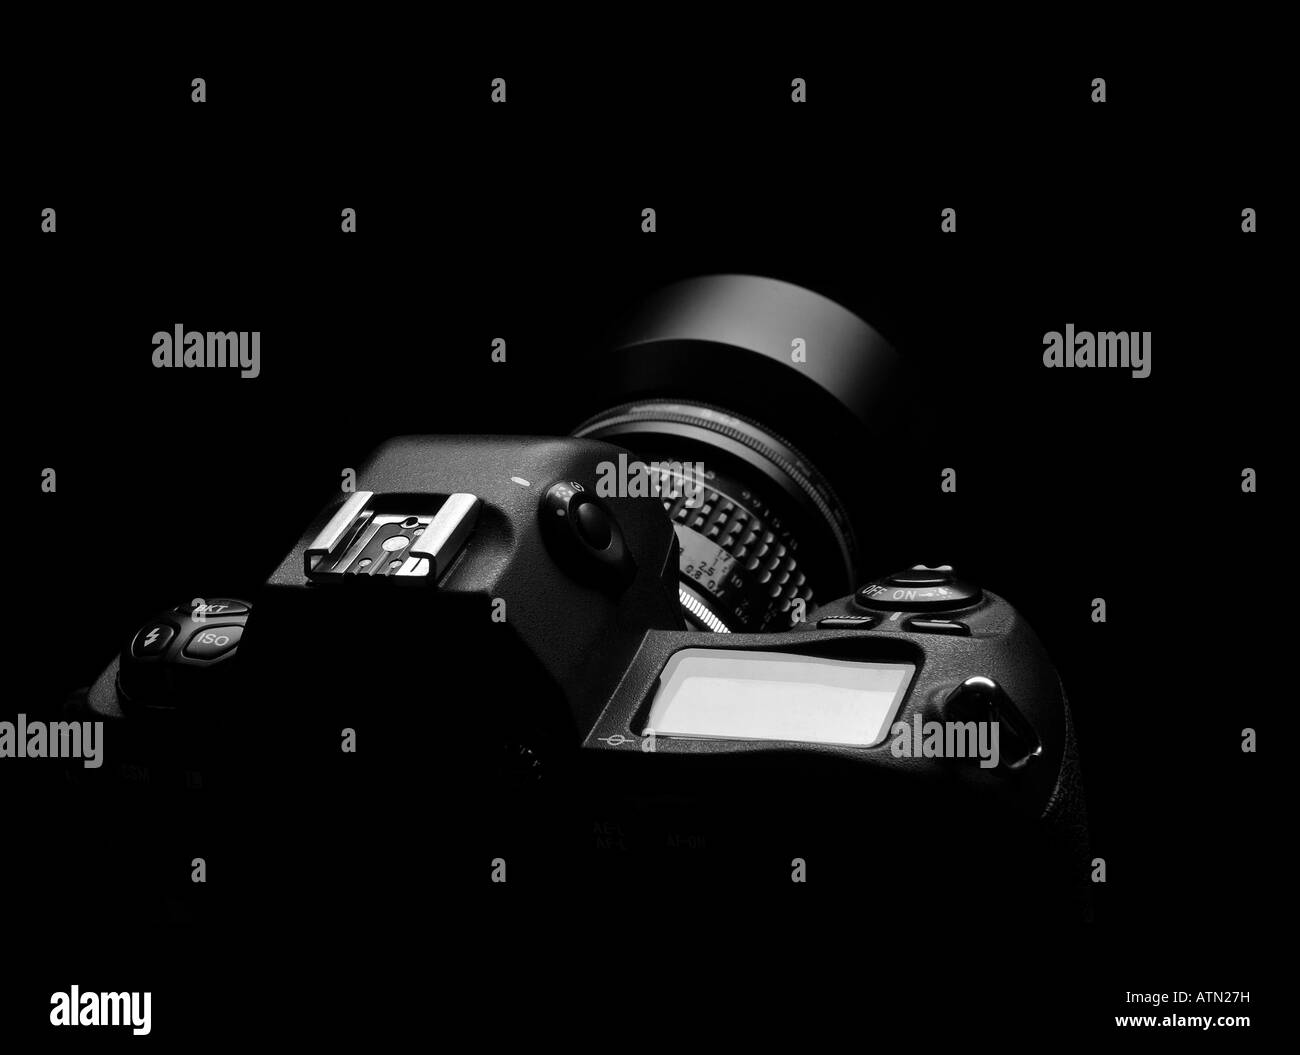 Professional camera outline isolated background black and white - Stock Image